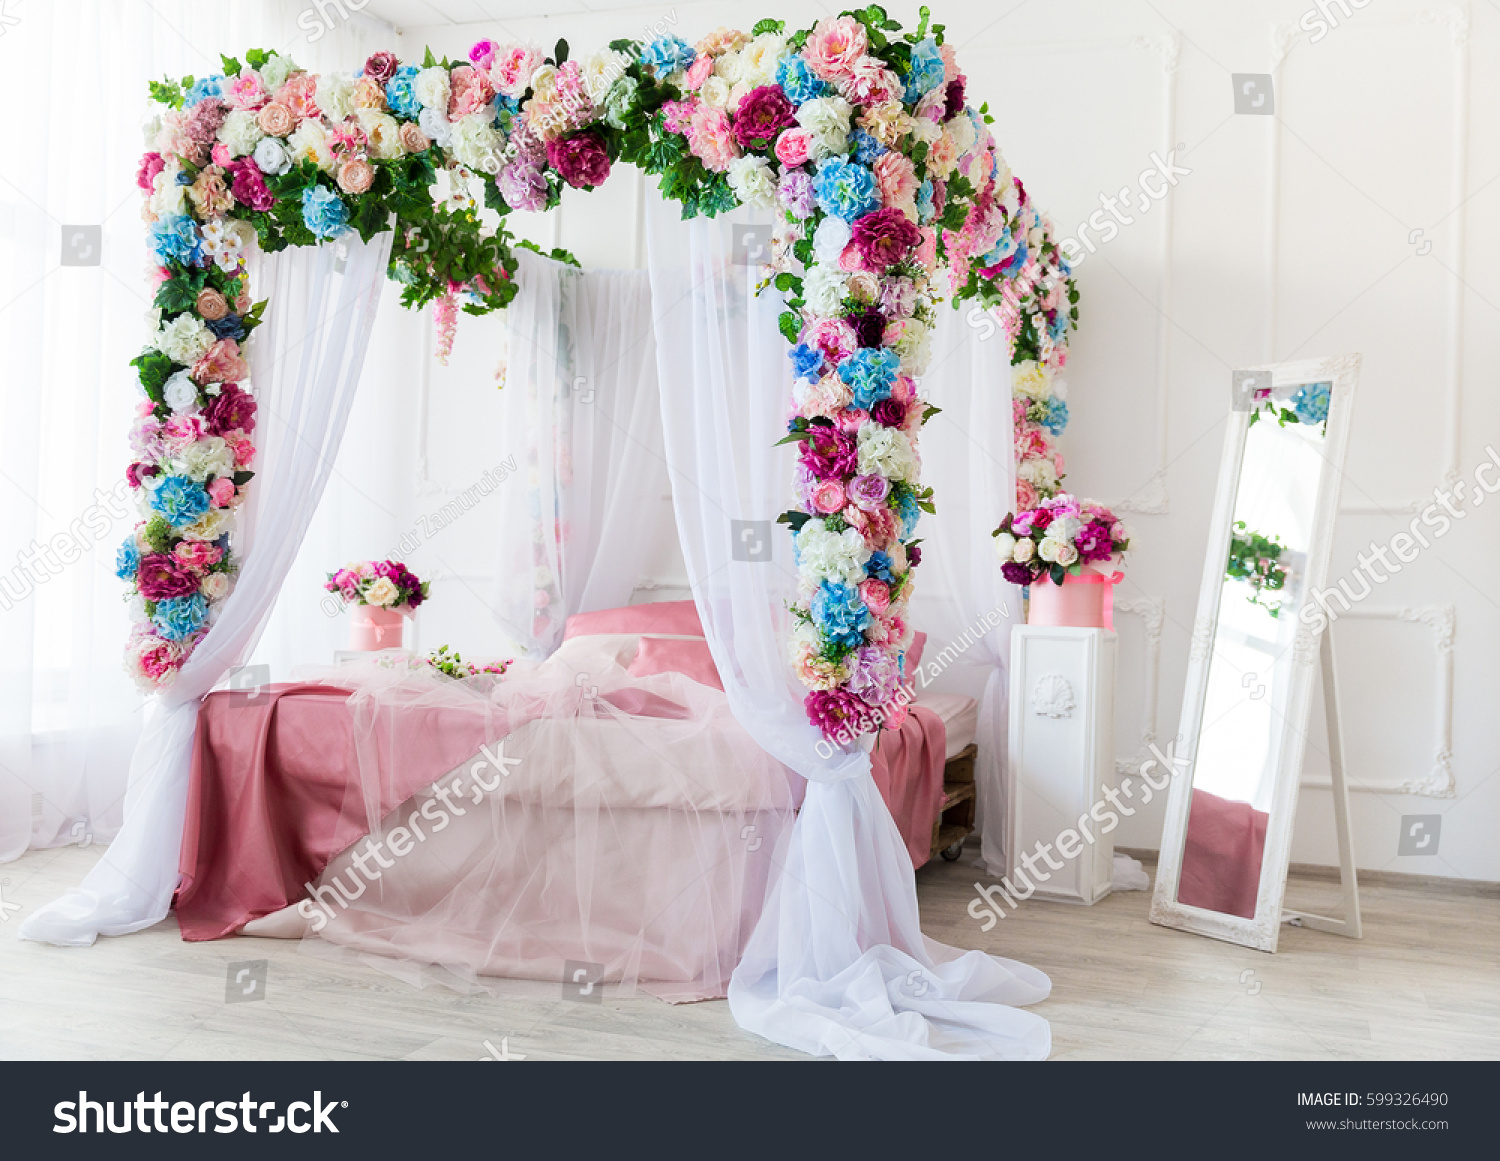 Bed Decorated With Flowers In Light Bedroom.